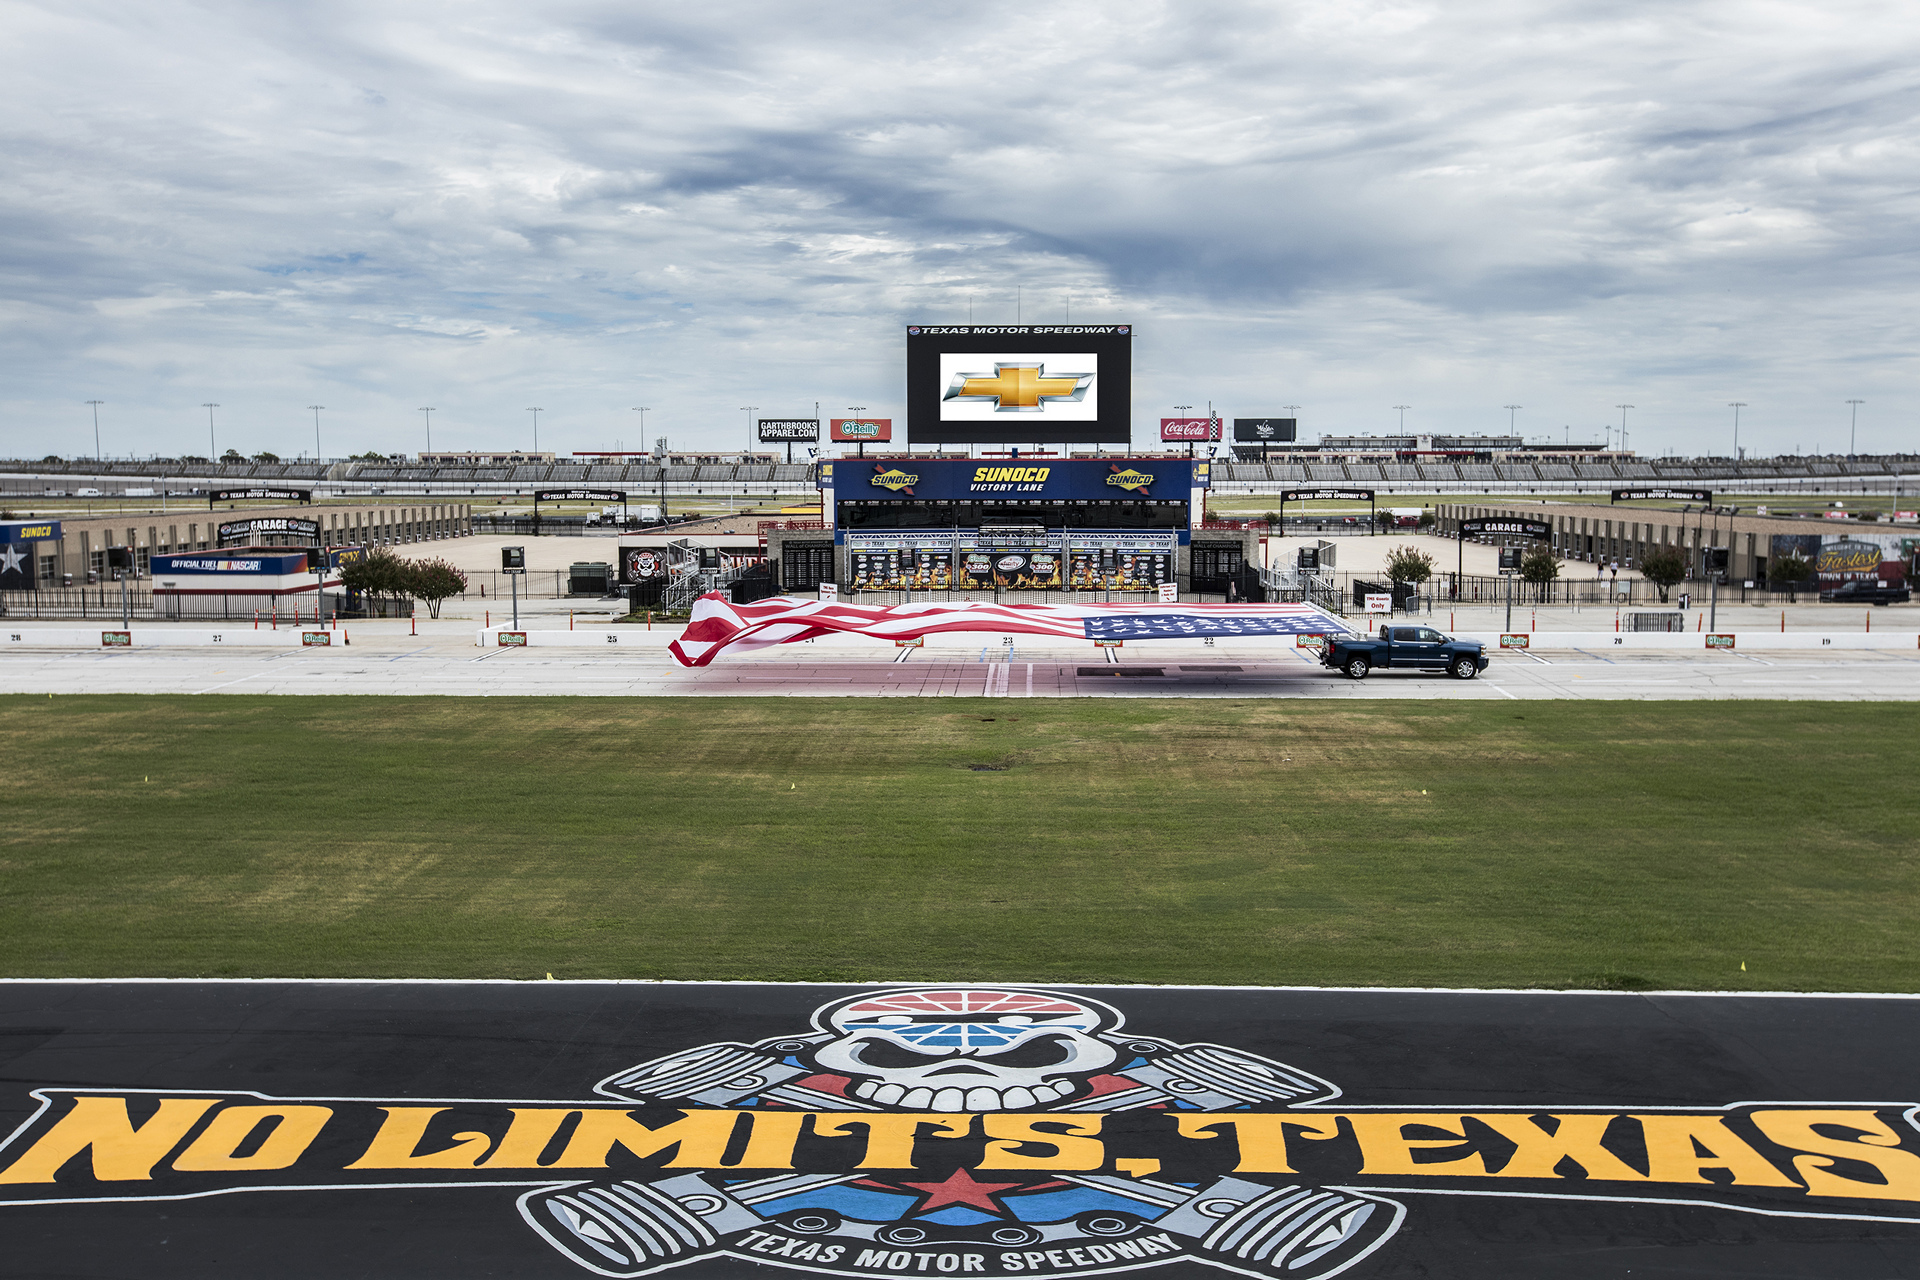 Chevrolet Sets GUINNESS WORLD RECORDS™ Title With 2017 Silverado HD © General Motors